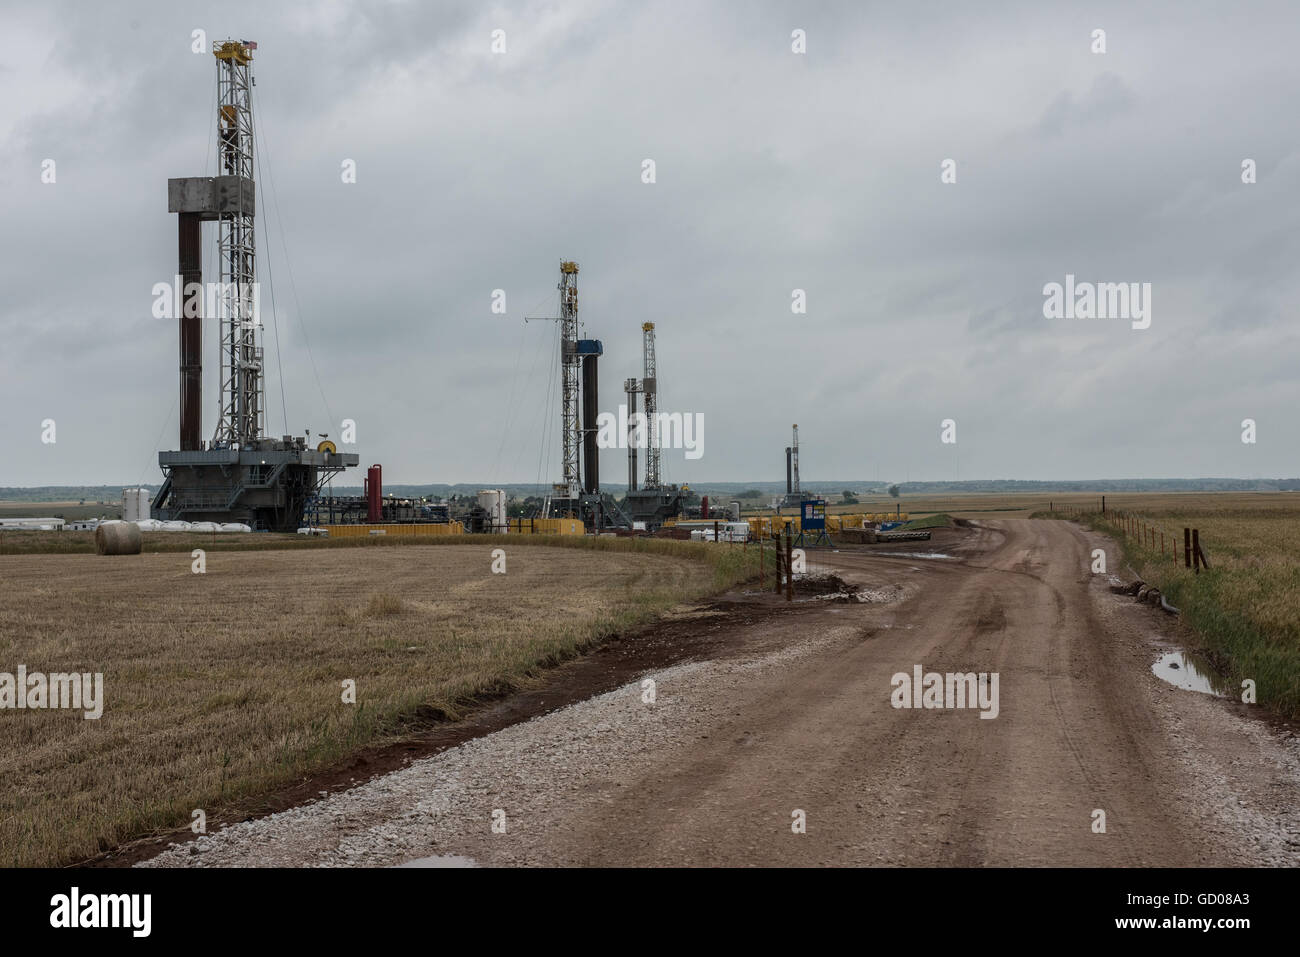 Fracking oil rig drills in Oklahoma field. - Stock Image